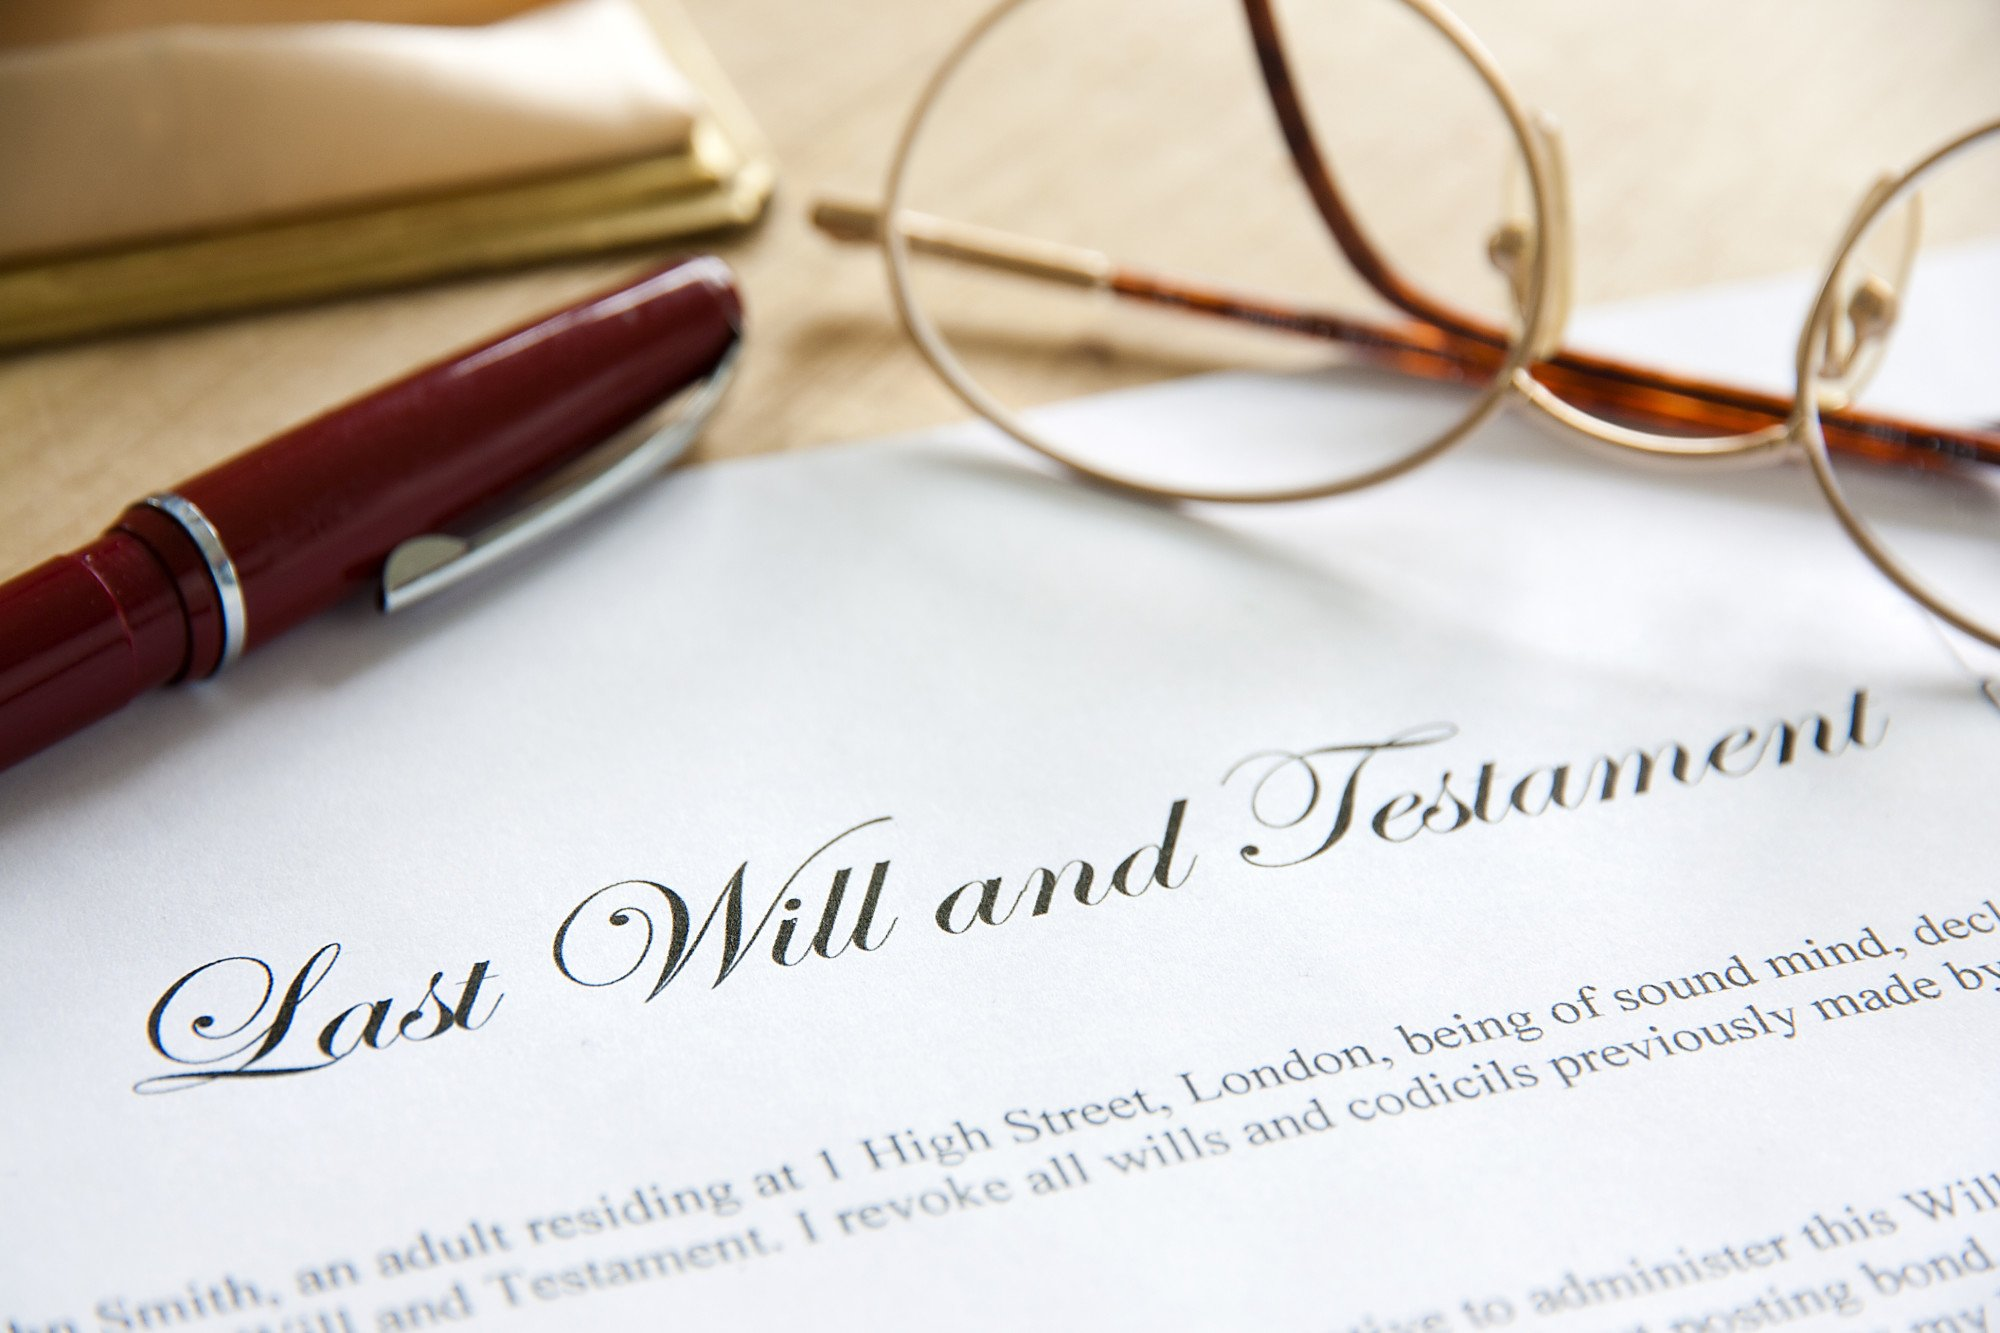 Will and Testament Legally Binding